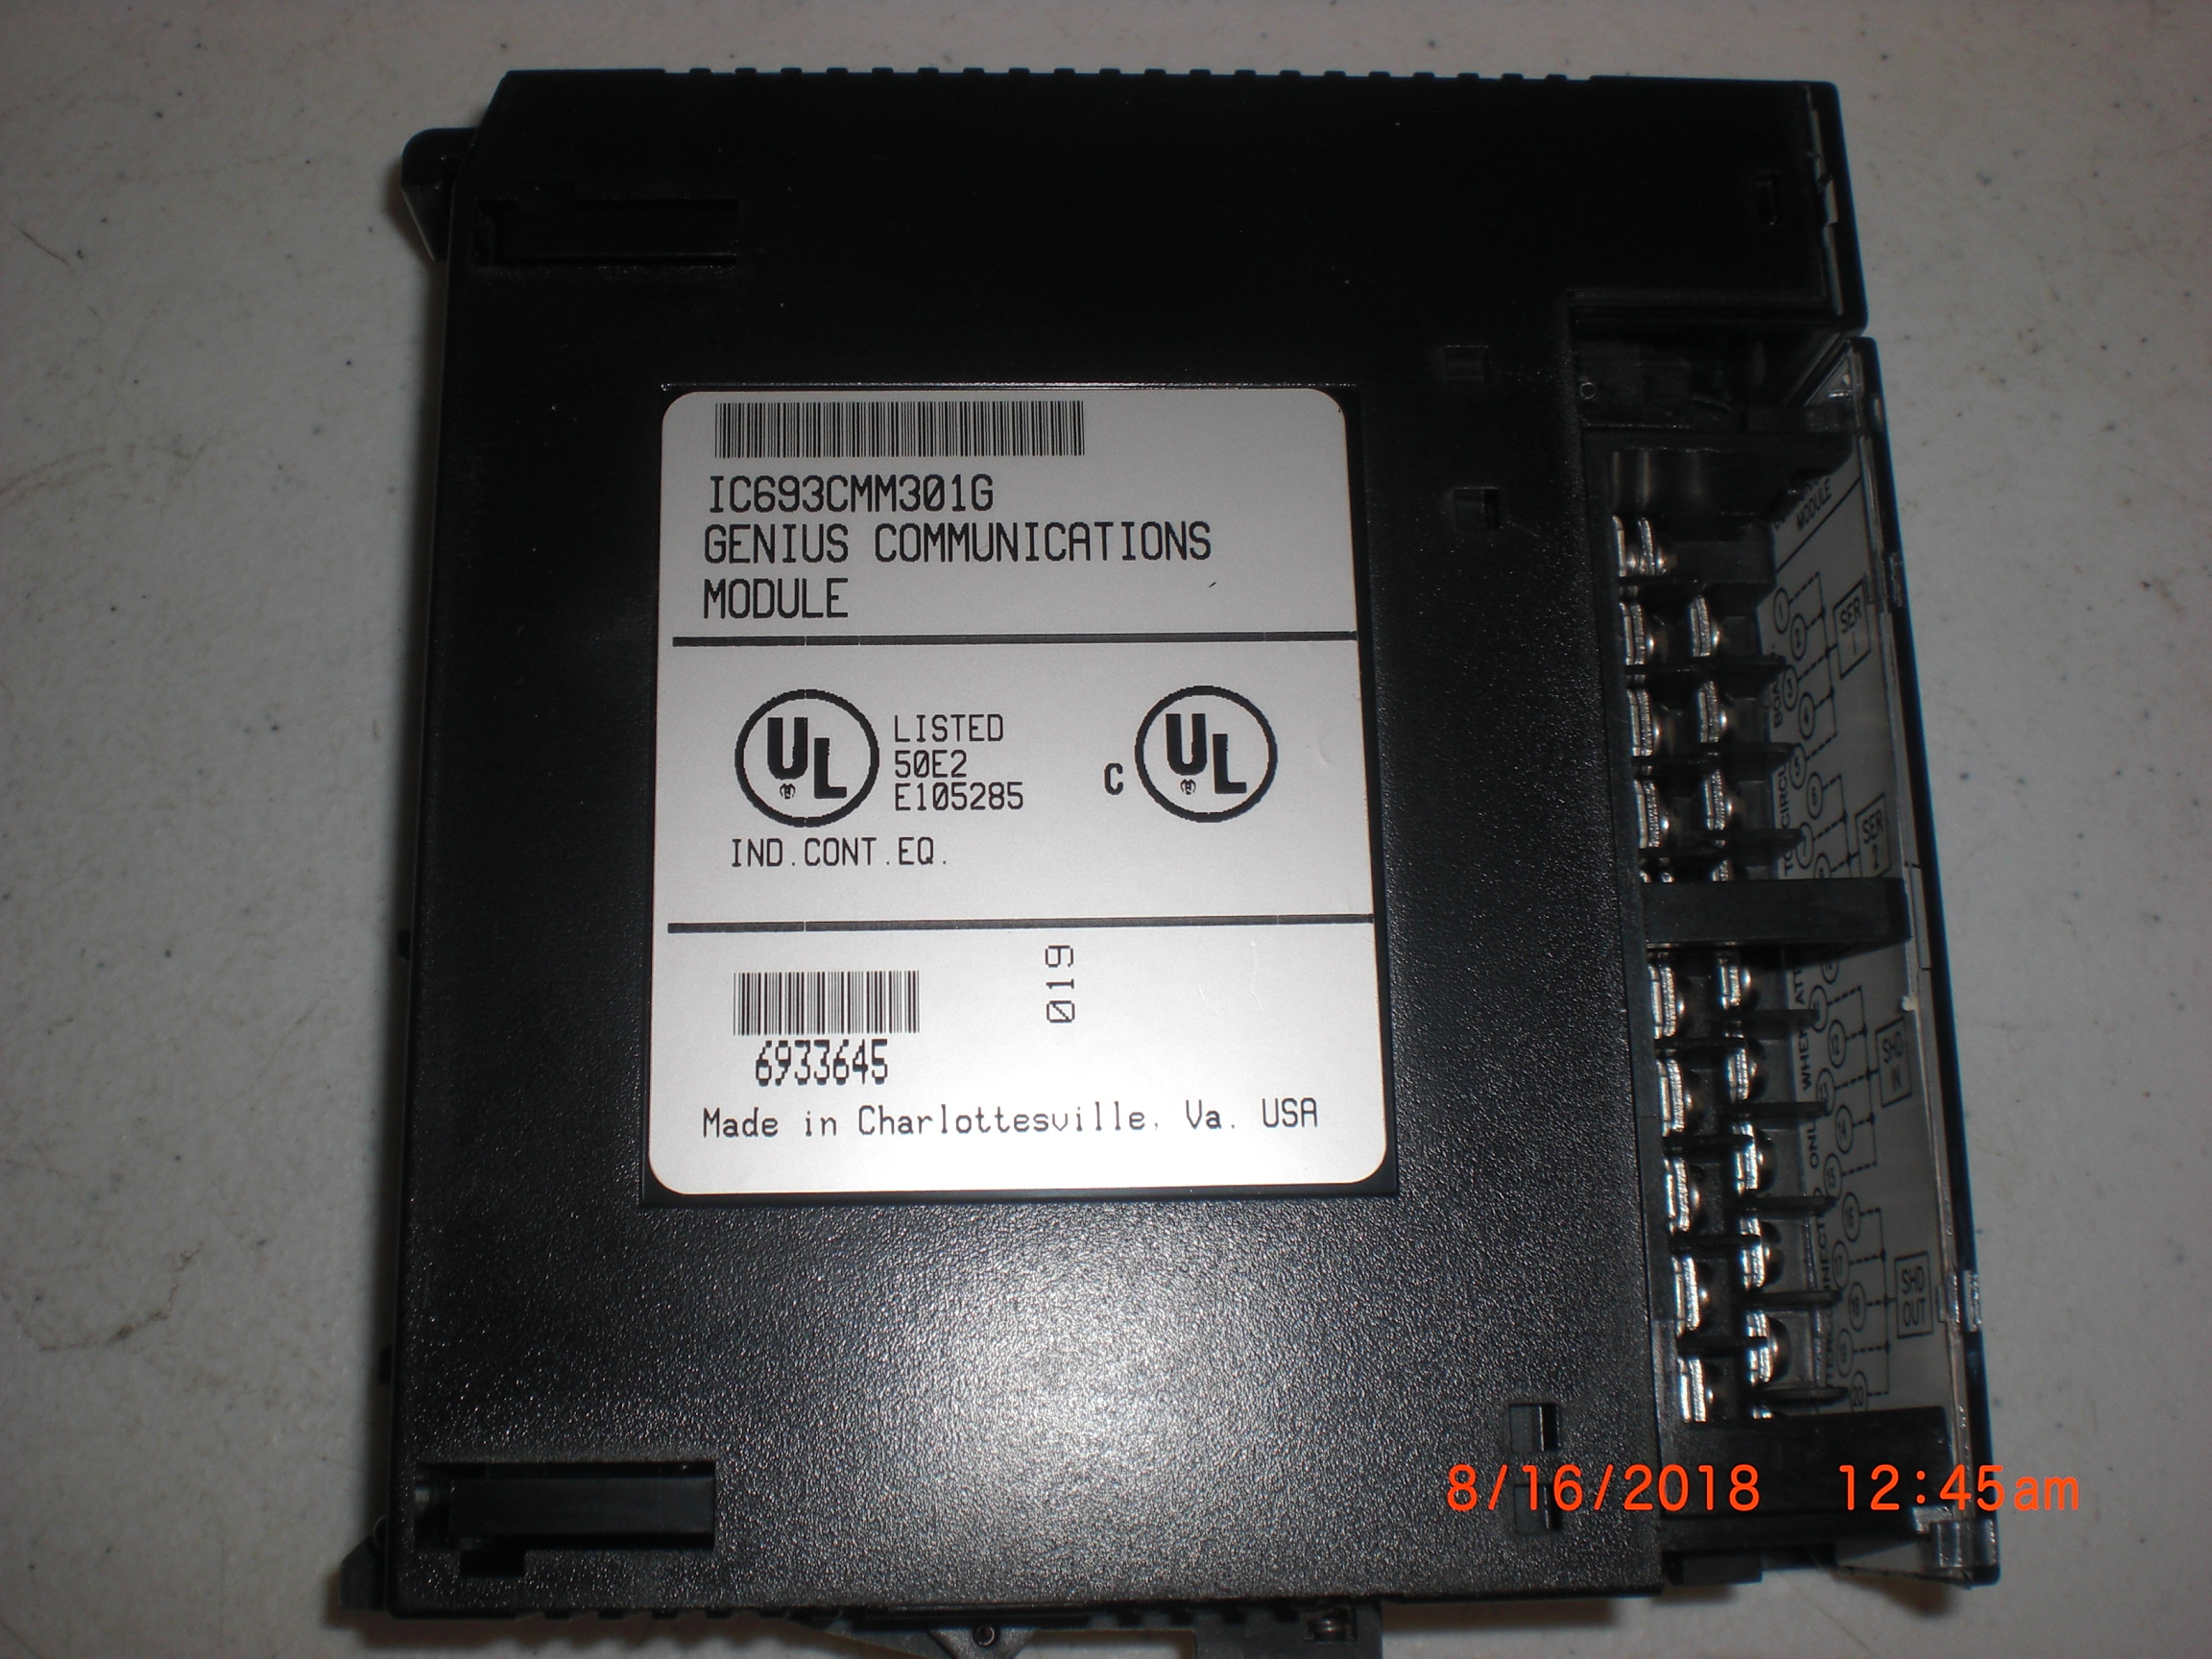 PLC GE FANUC IC693CMM301G MODULE,COMM,GENIUS Harvested new